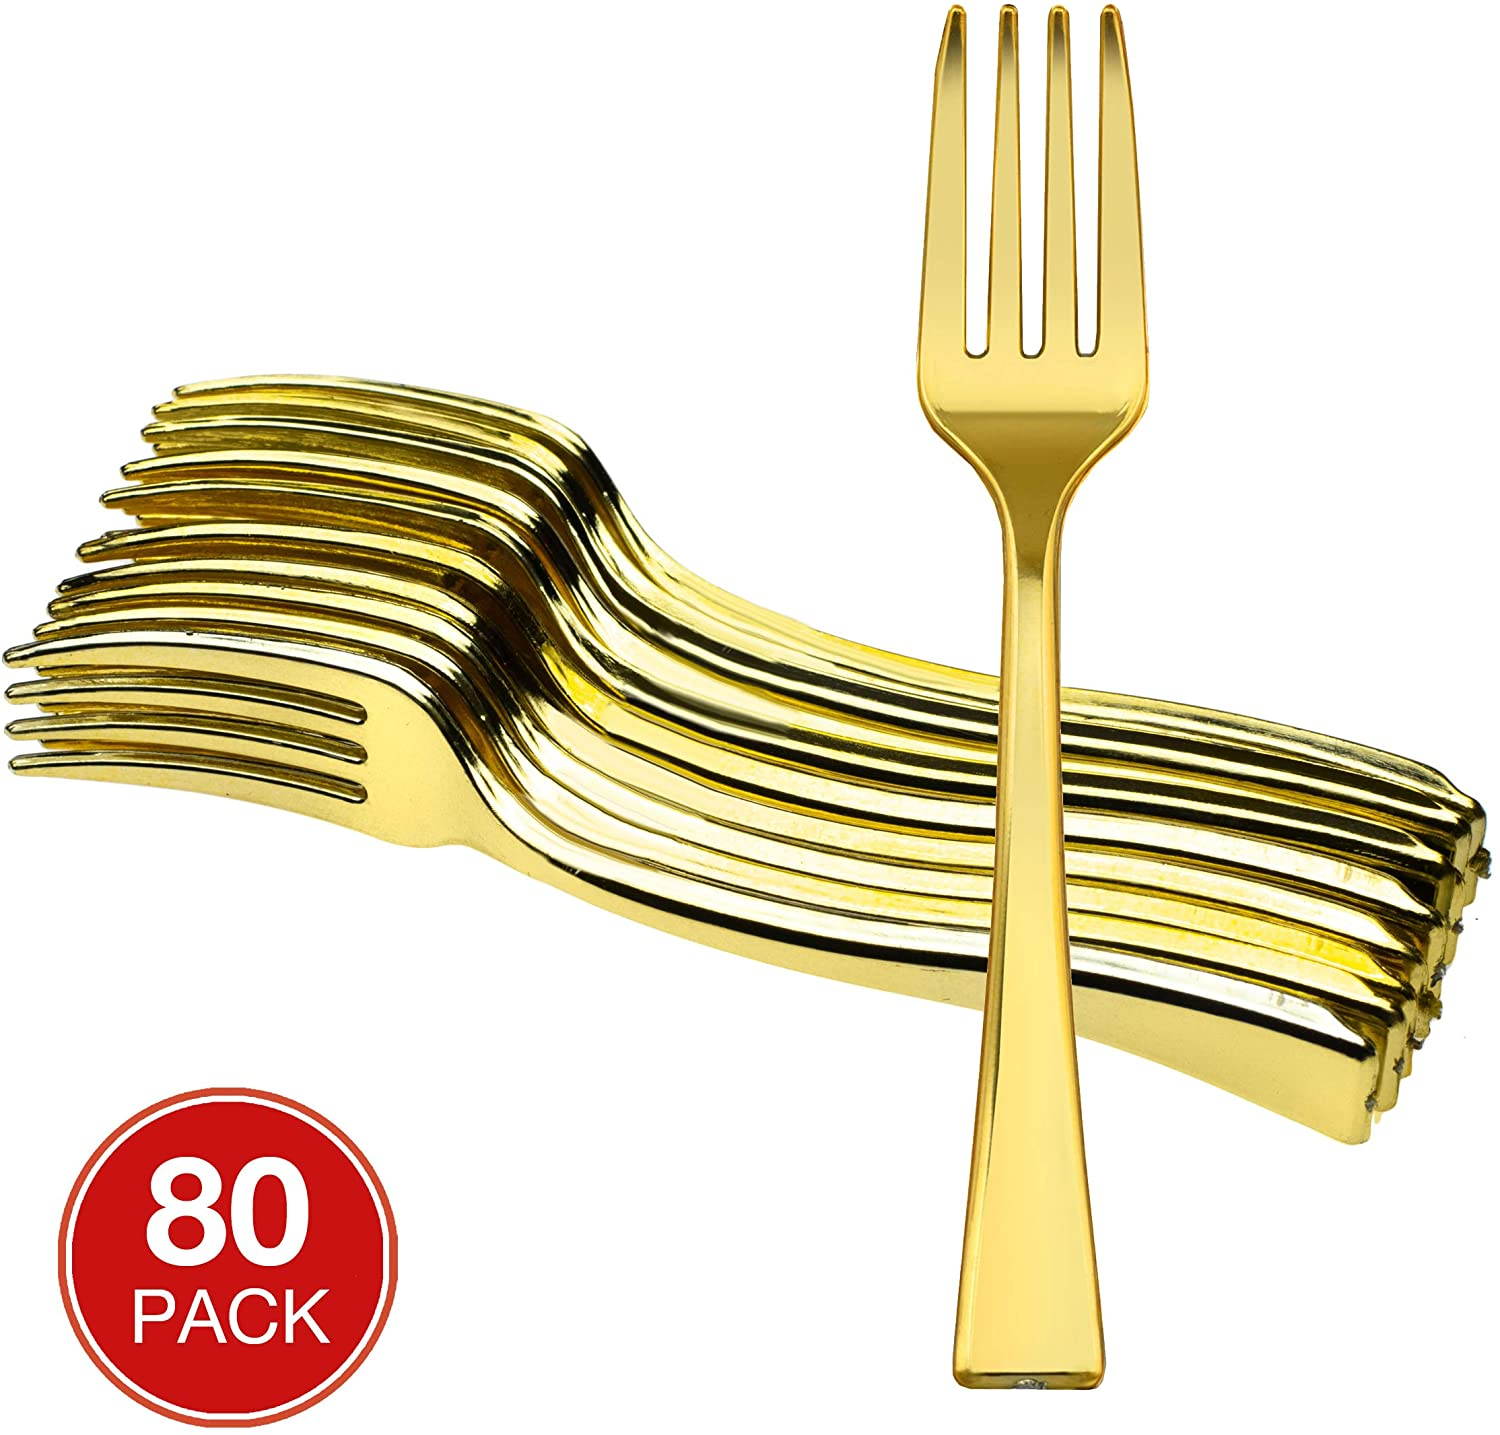 Majestic Settings Mini Collection Disposable Plastic Mini Forks, Plastic Tasting Forks, 4 inch Forks, Great for Desserts, Sampling, or Appetizers… (Gold 80 pk)